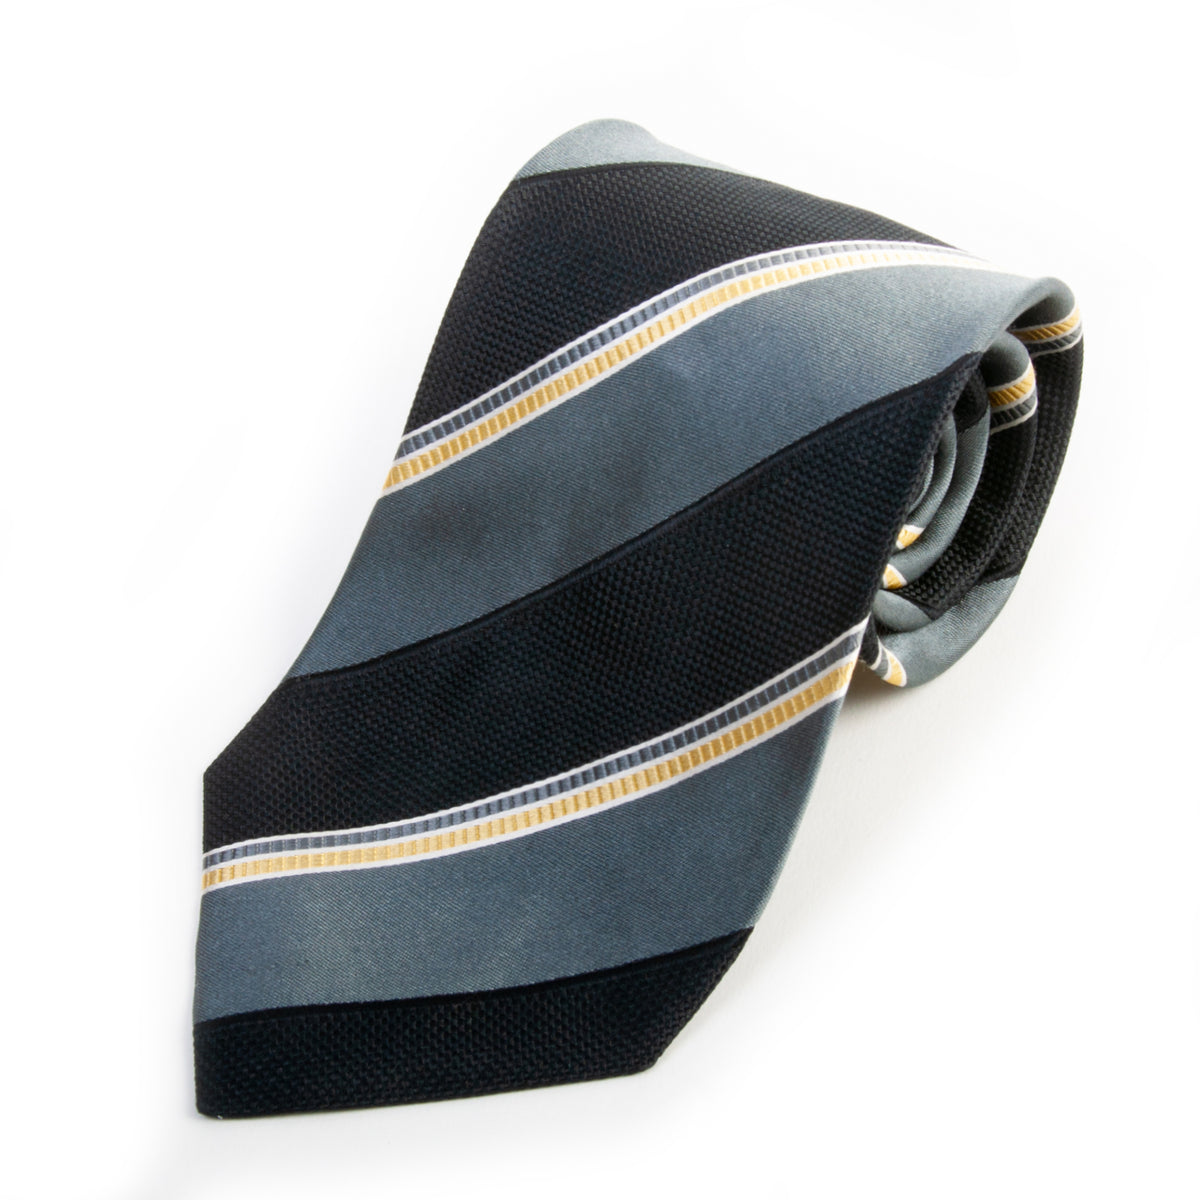 Giorgio Armani Black on Grey Shadow Stripe Silk Tie for Luxmrkt.com Menswear Consignment Edmonton